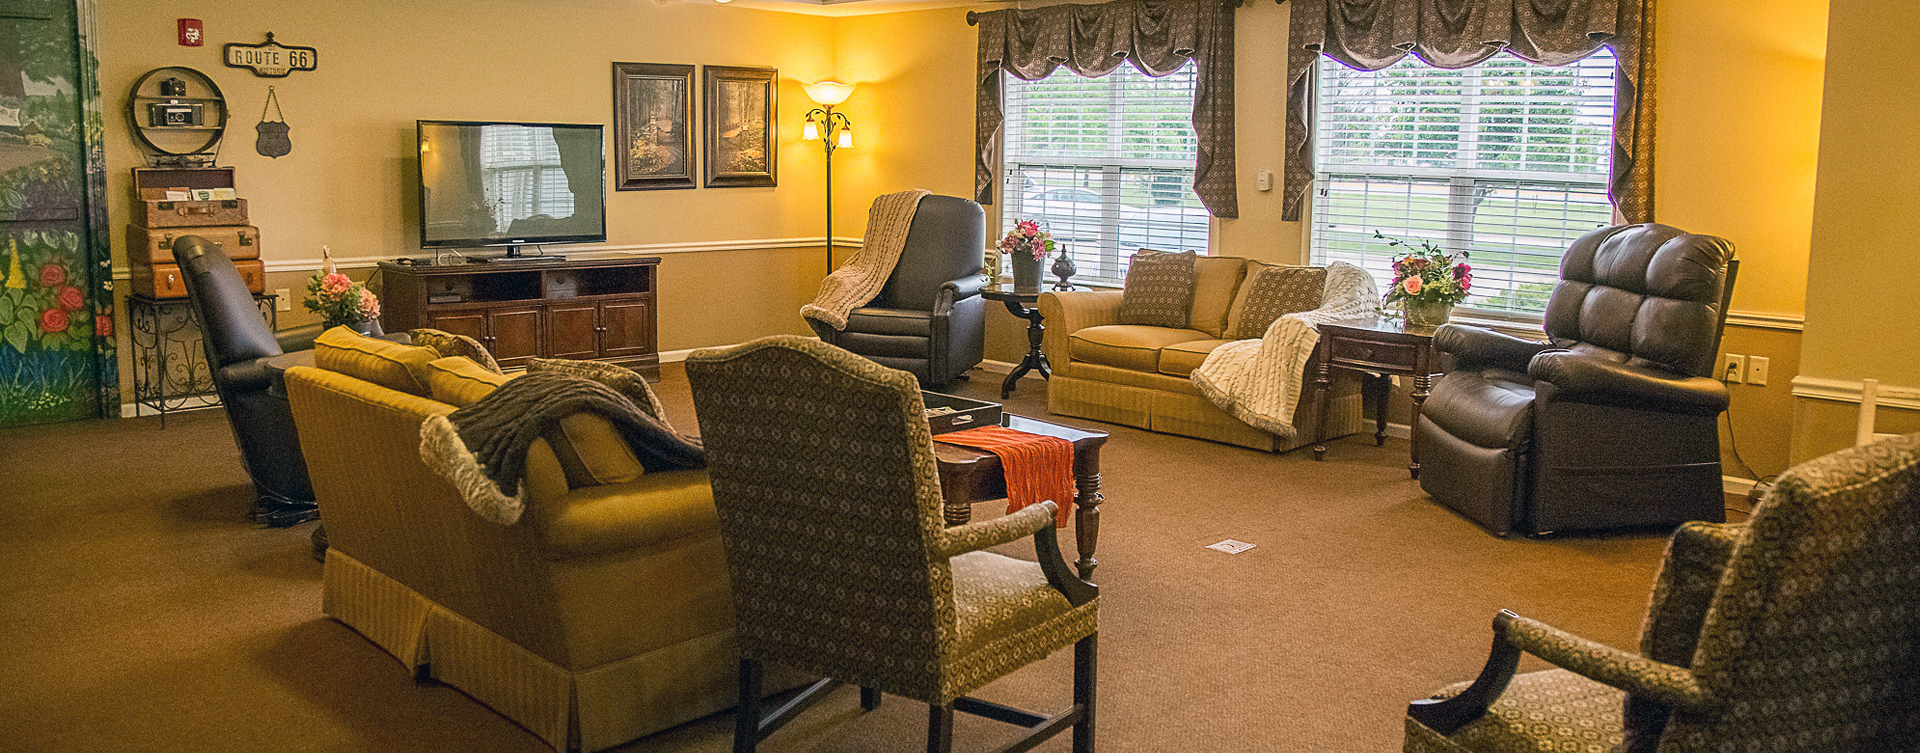 Residents can enjoy furniture covered in cozy fabrics in the Mary B's living room at Bickford of Burlington